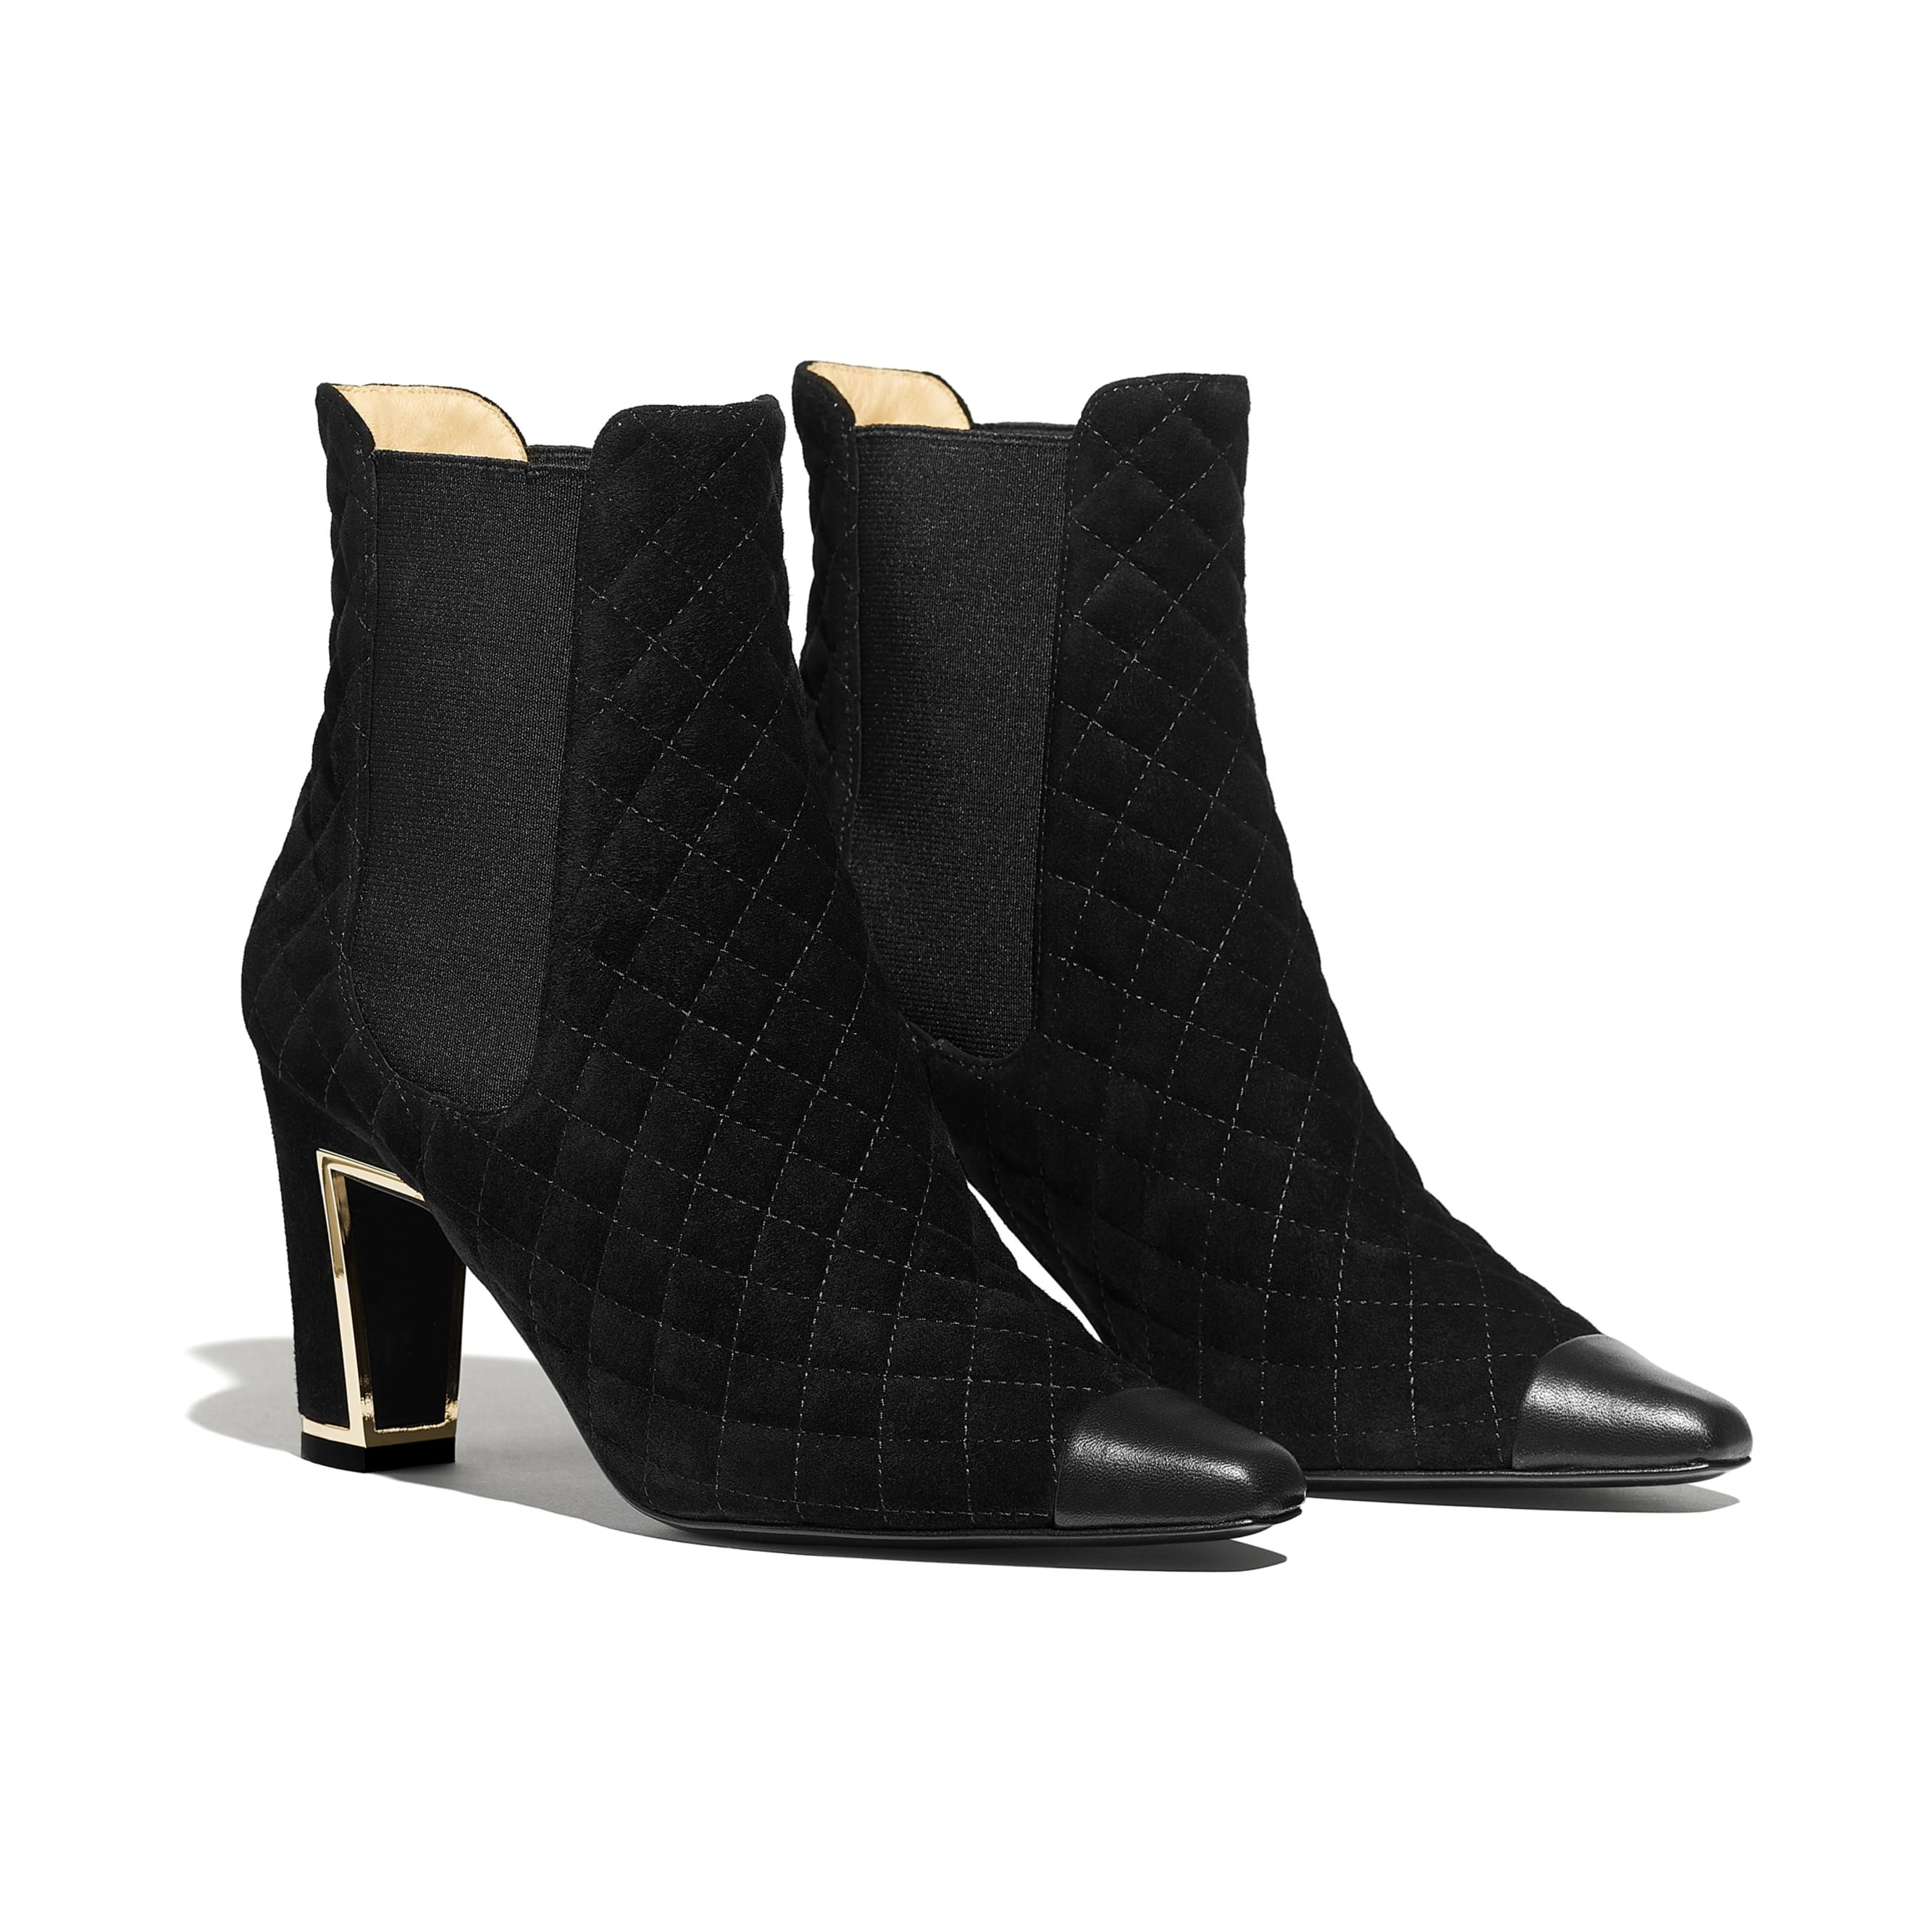 Ankle Boots - Black - Suede Calfskin & Lambskin - Alternative view - see standard sized version